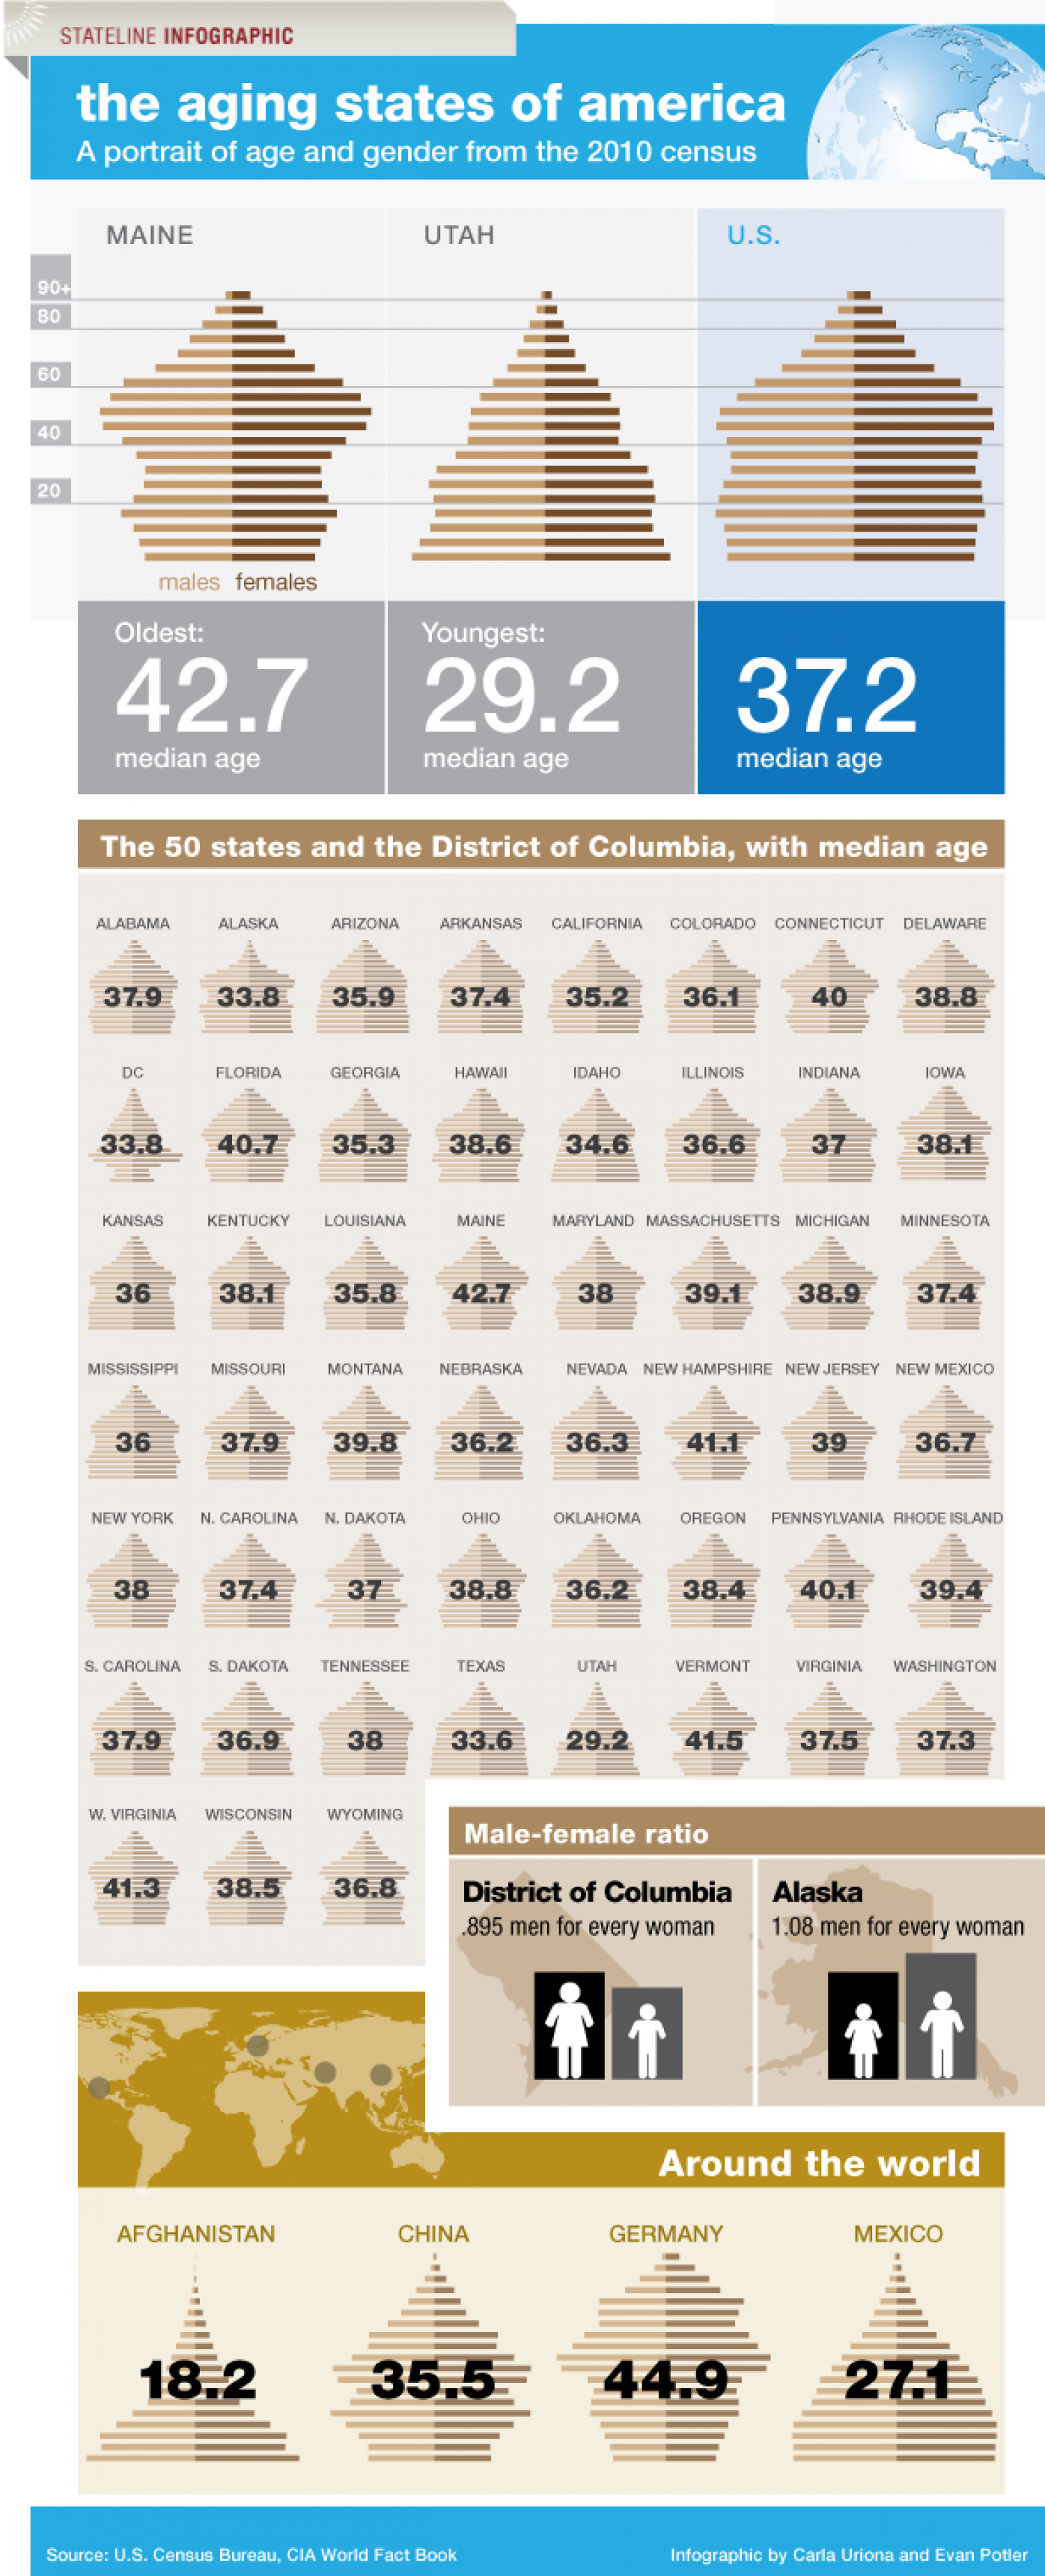 The aging states of America: population by gender Infographic